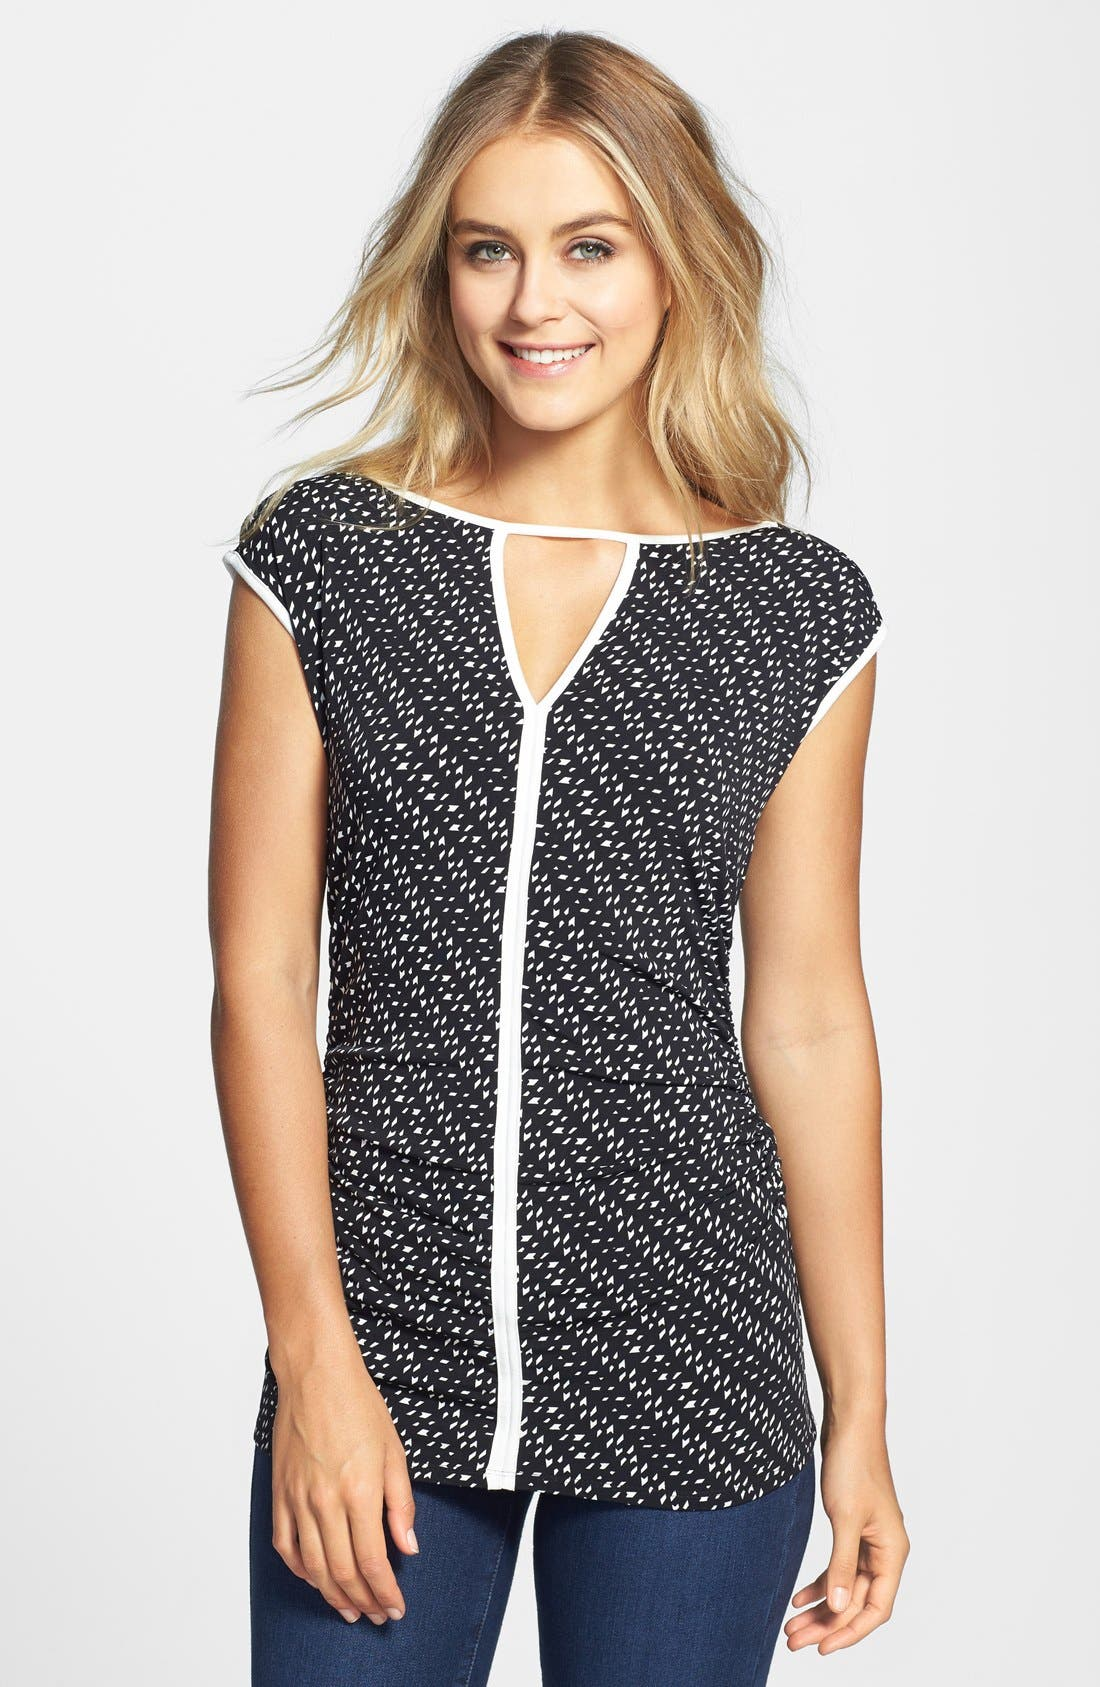 Alternate Image 1 Selected - Vince Camuto 'Graphic Specks' Contrast Trim Top (Regular & Petite)